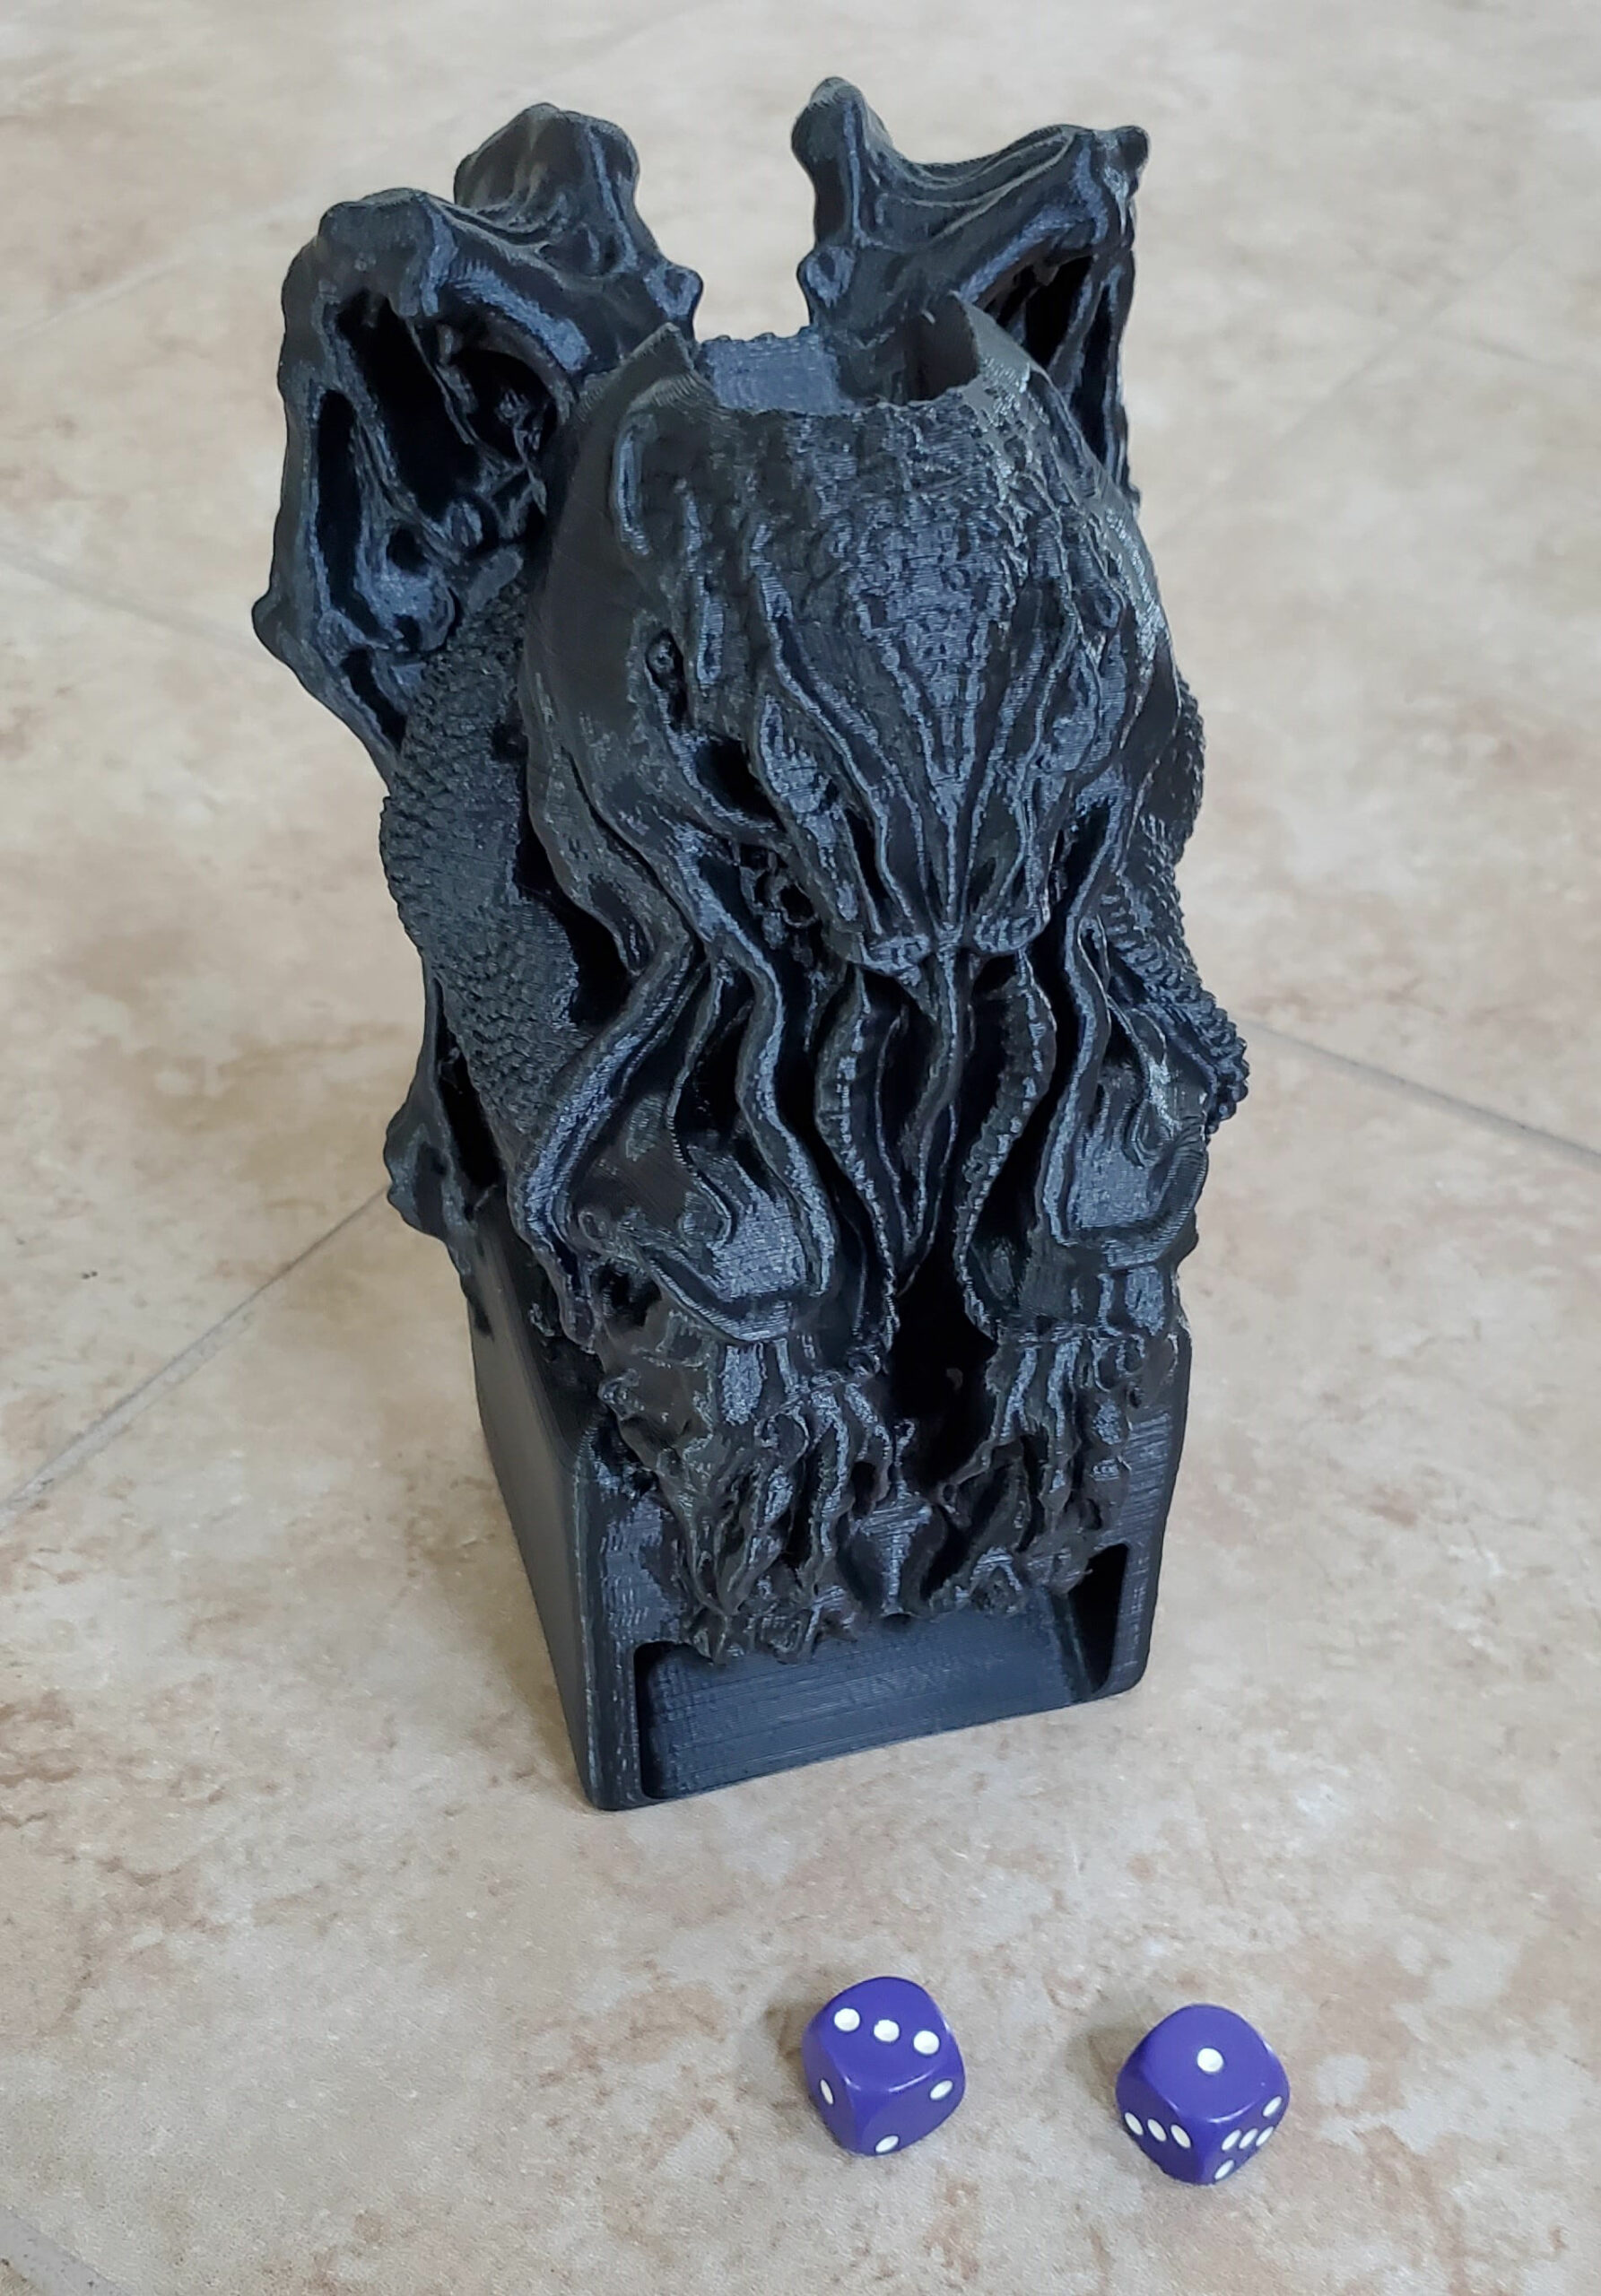 plx filament Cthulhu Idol Dice Tower